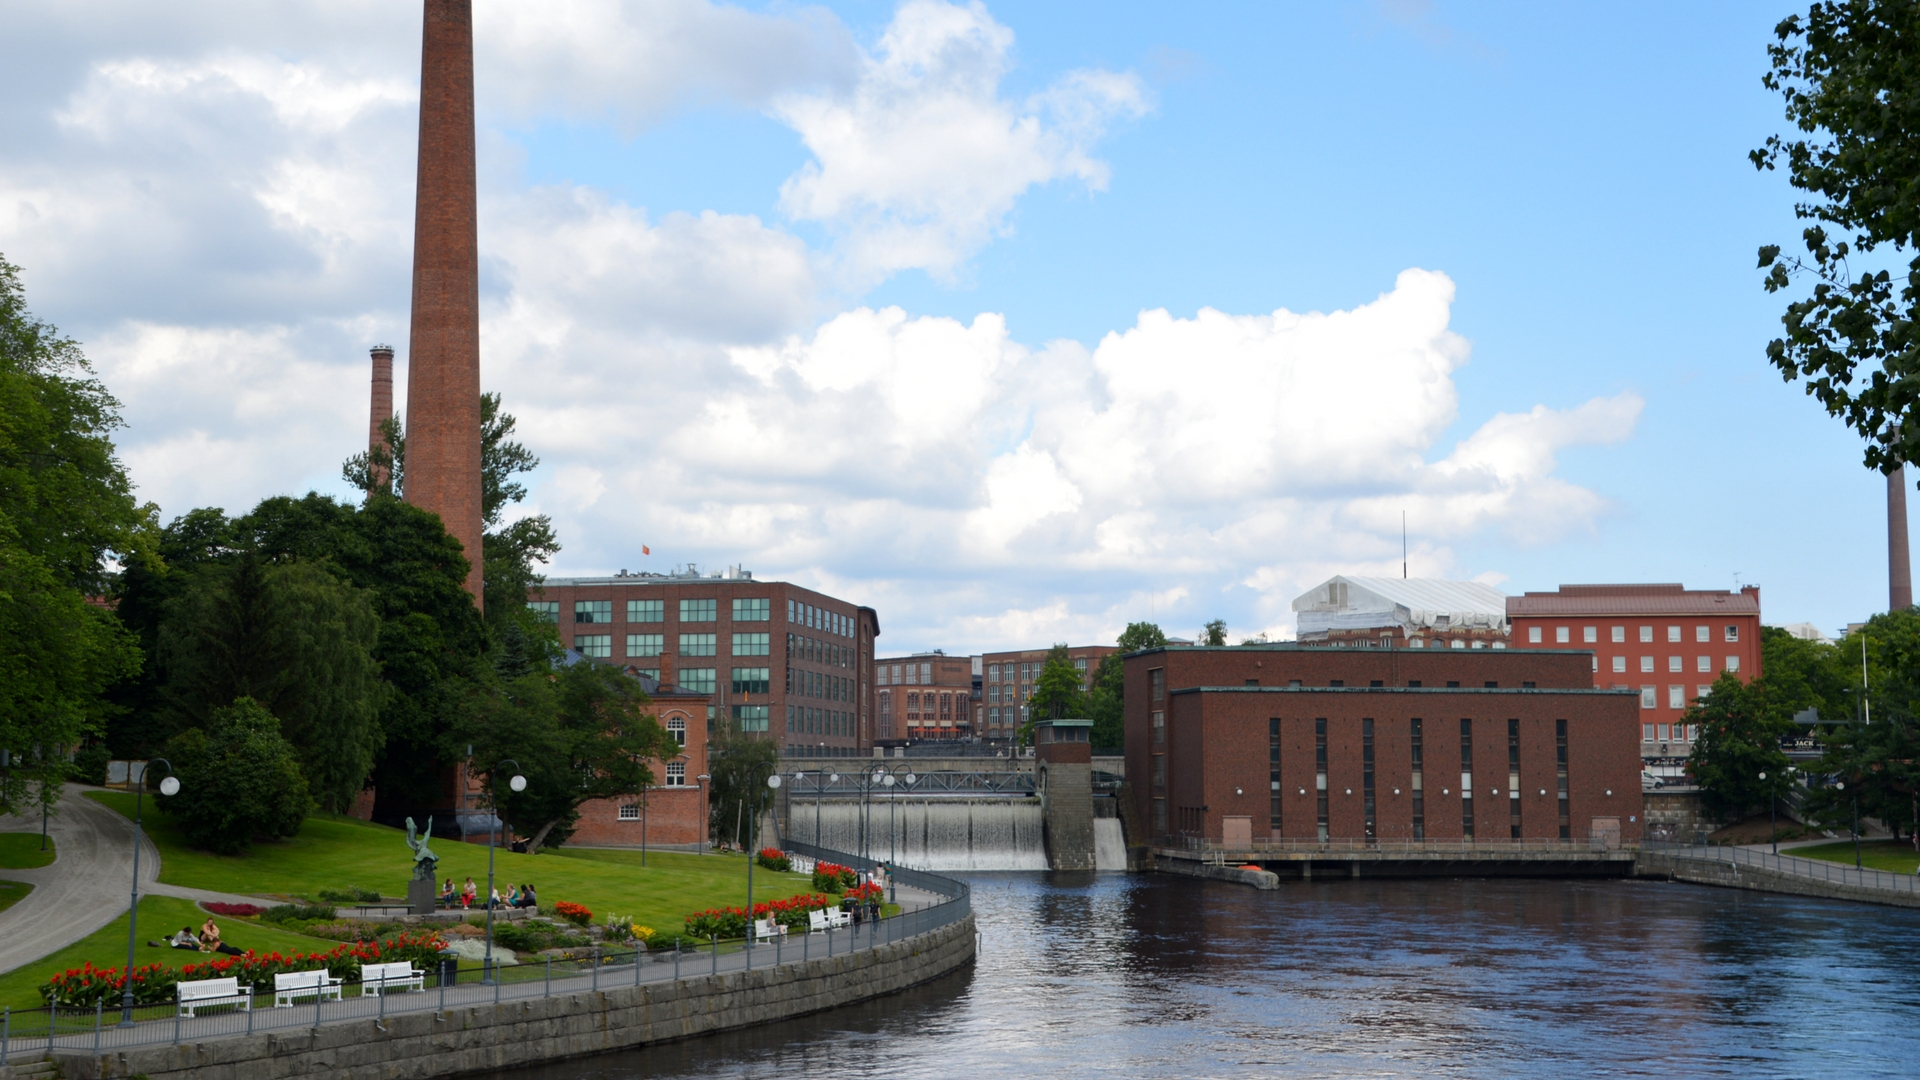 tampere-sightseeing-and-food-tour4.jpg